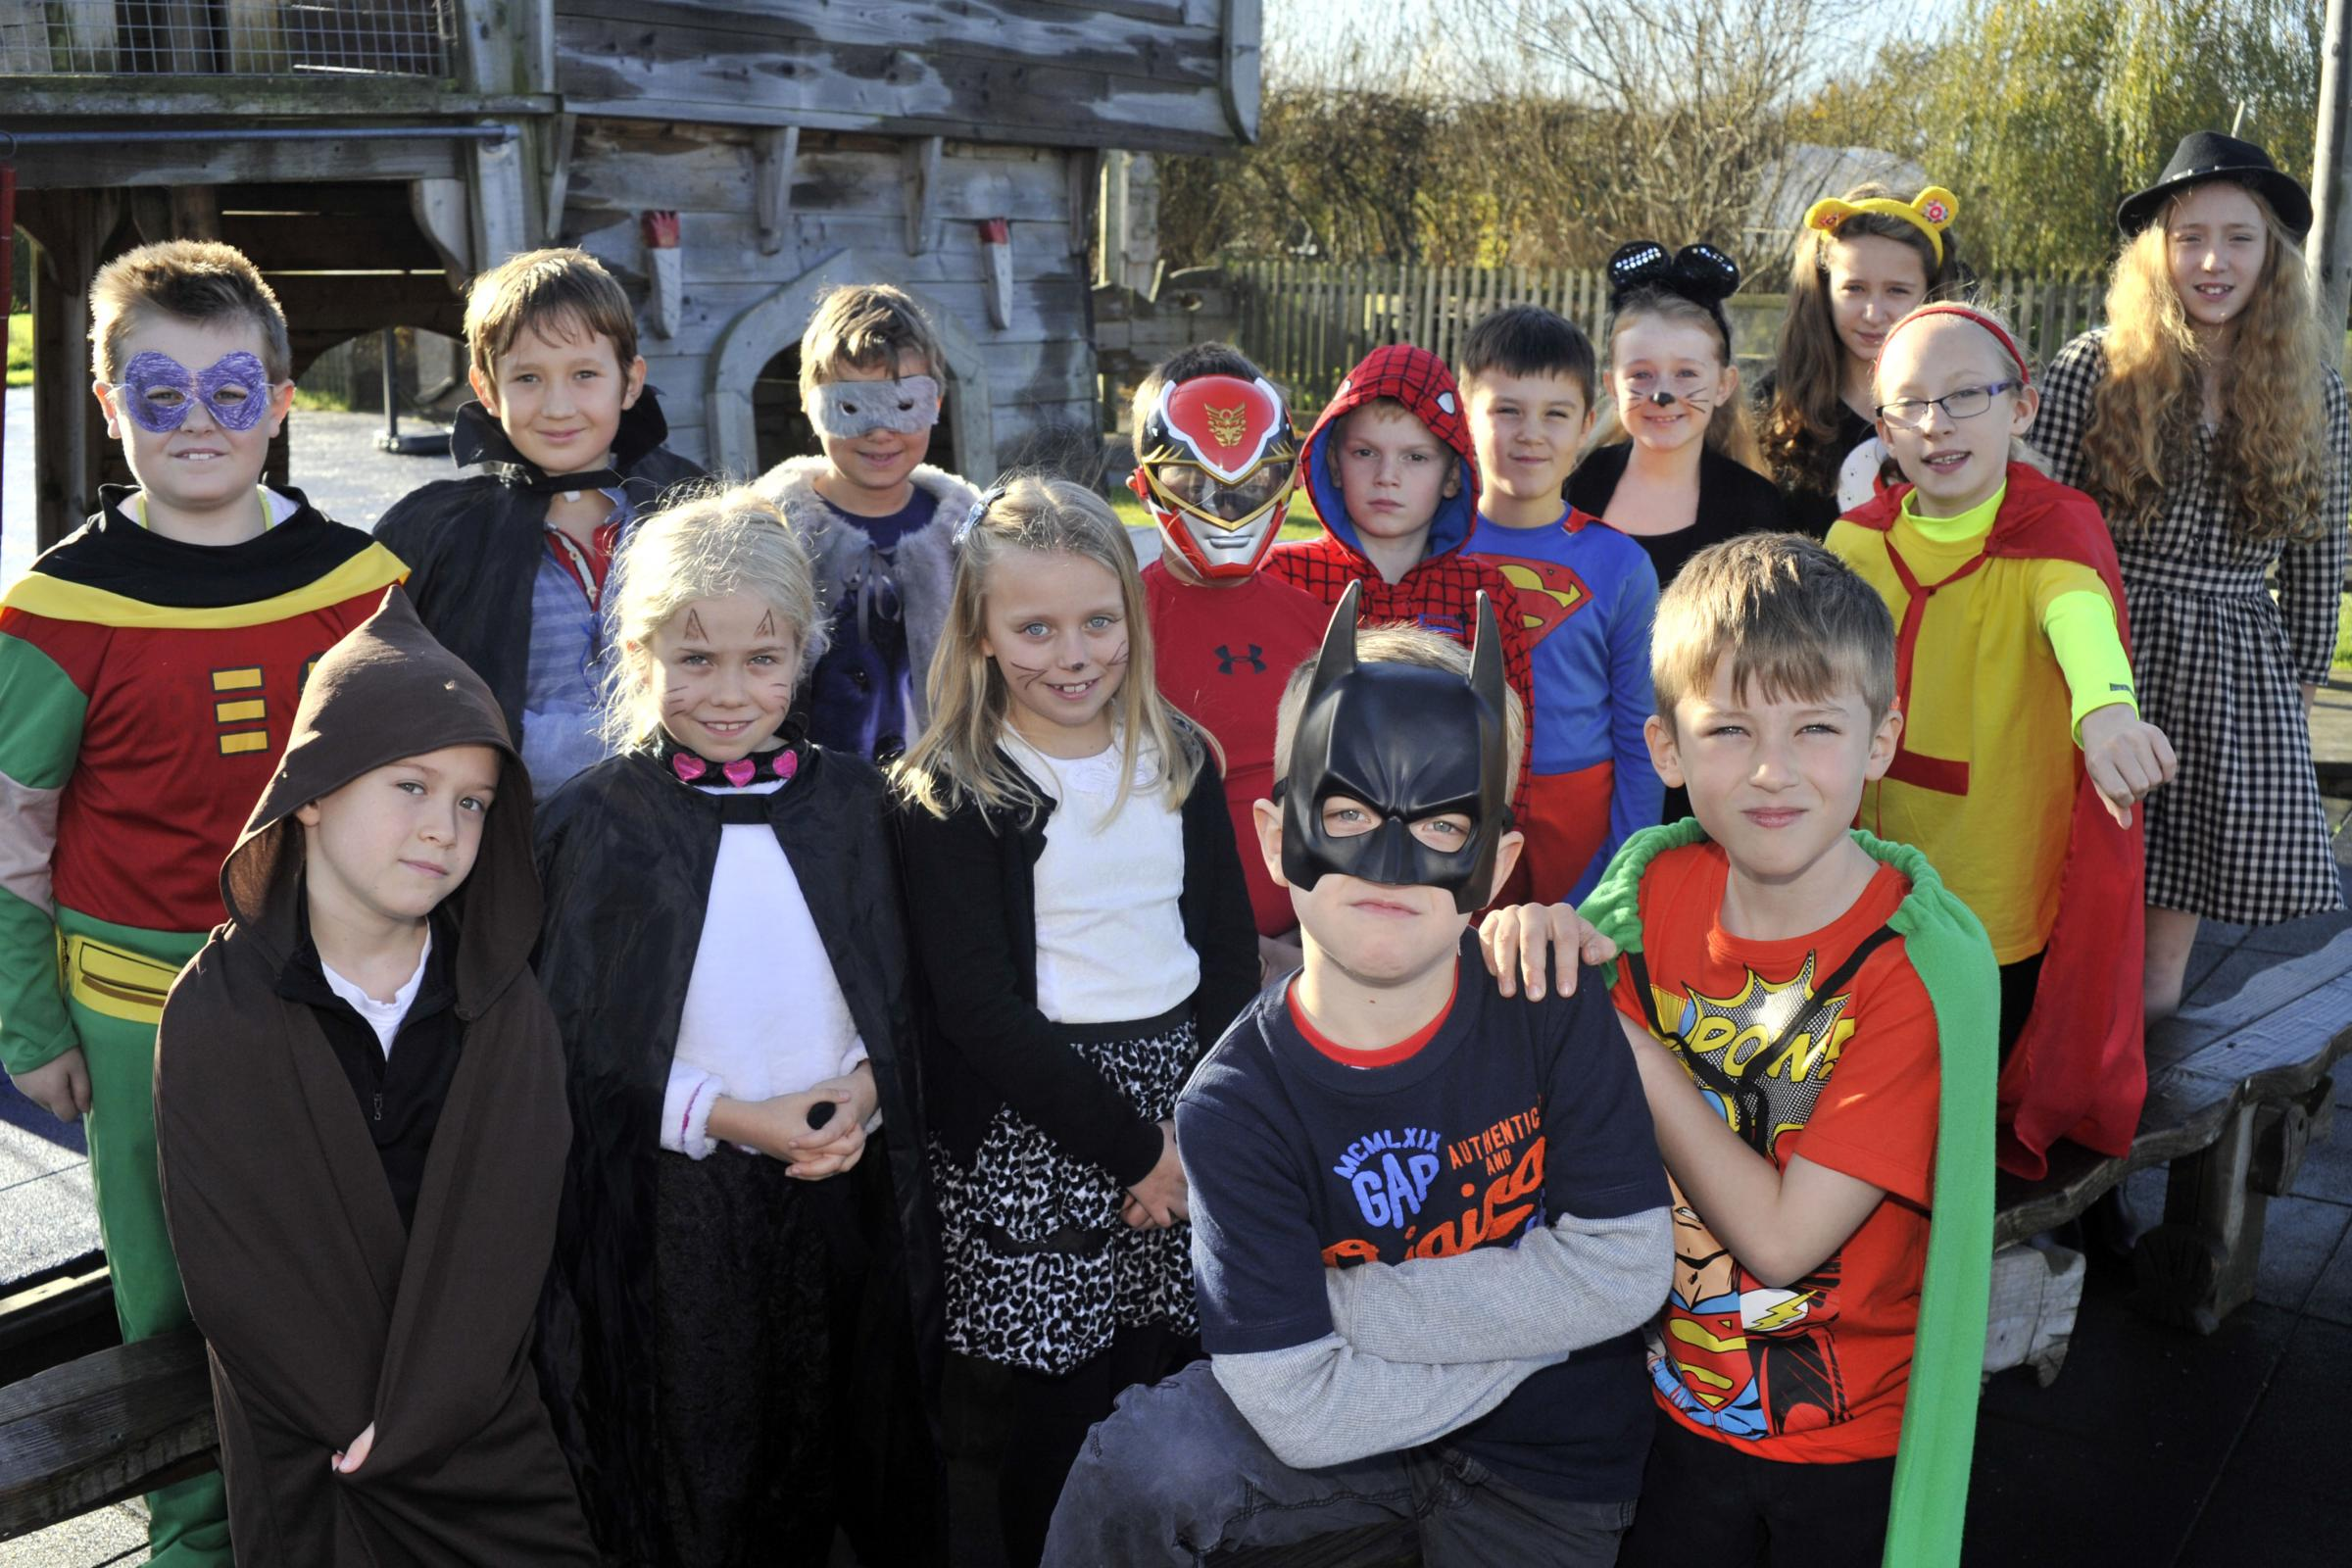 Superheroes out in force at The Mead Community Primary School, Hilperton. Picture by Glenn Phillips